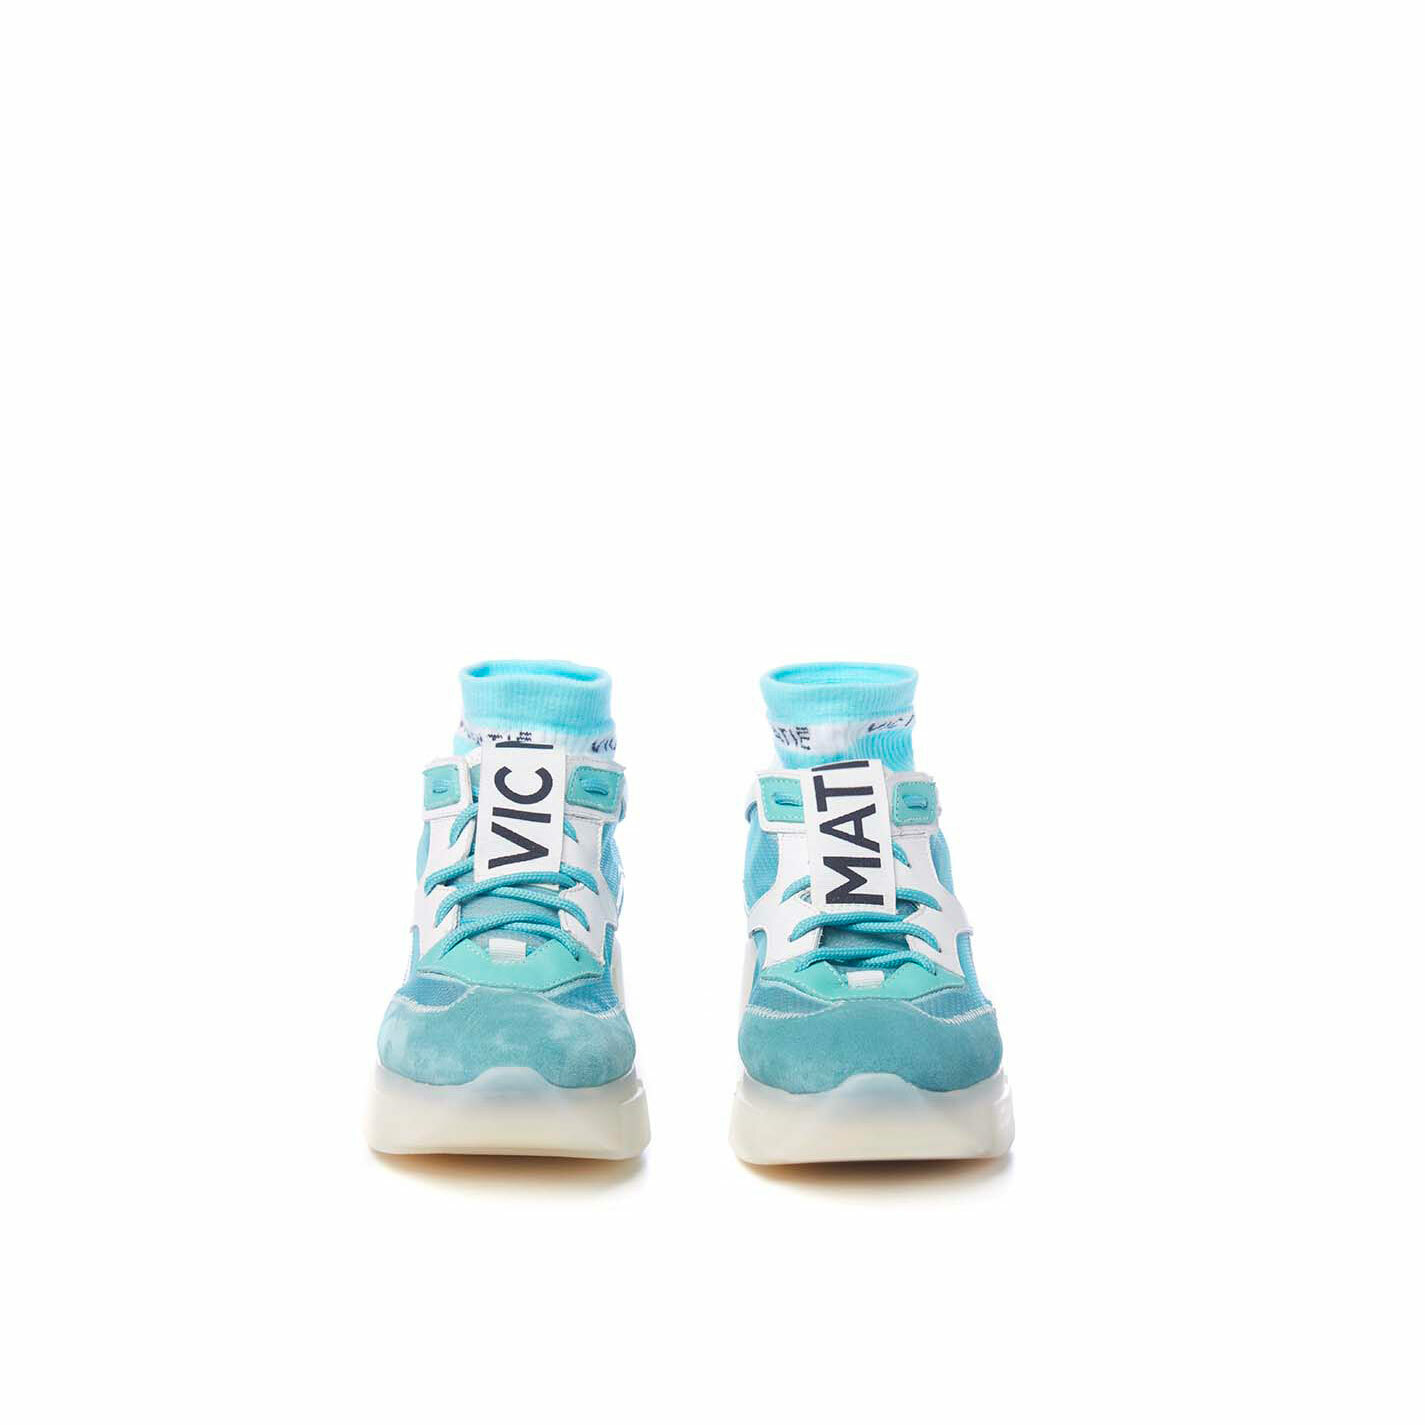 Sky-blue running shoes in split leather and see-through ripstop